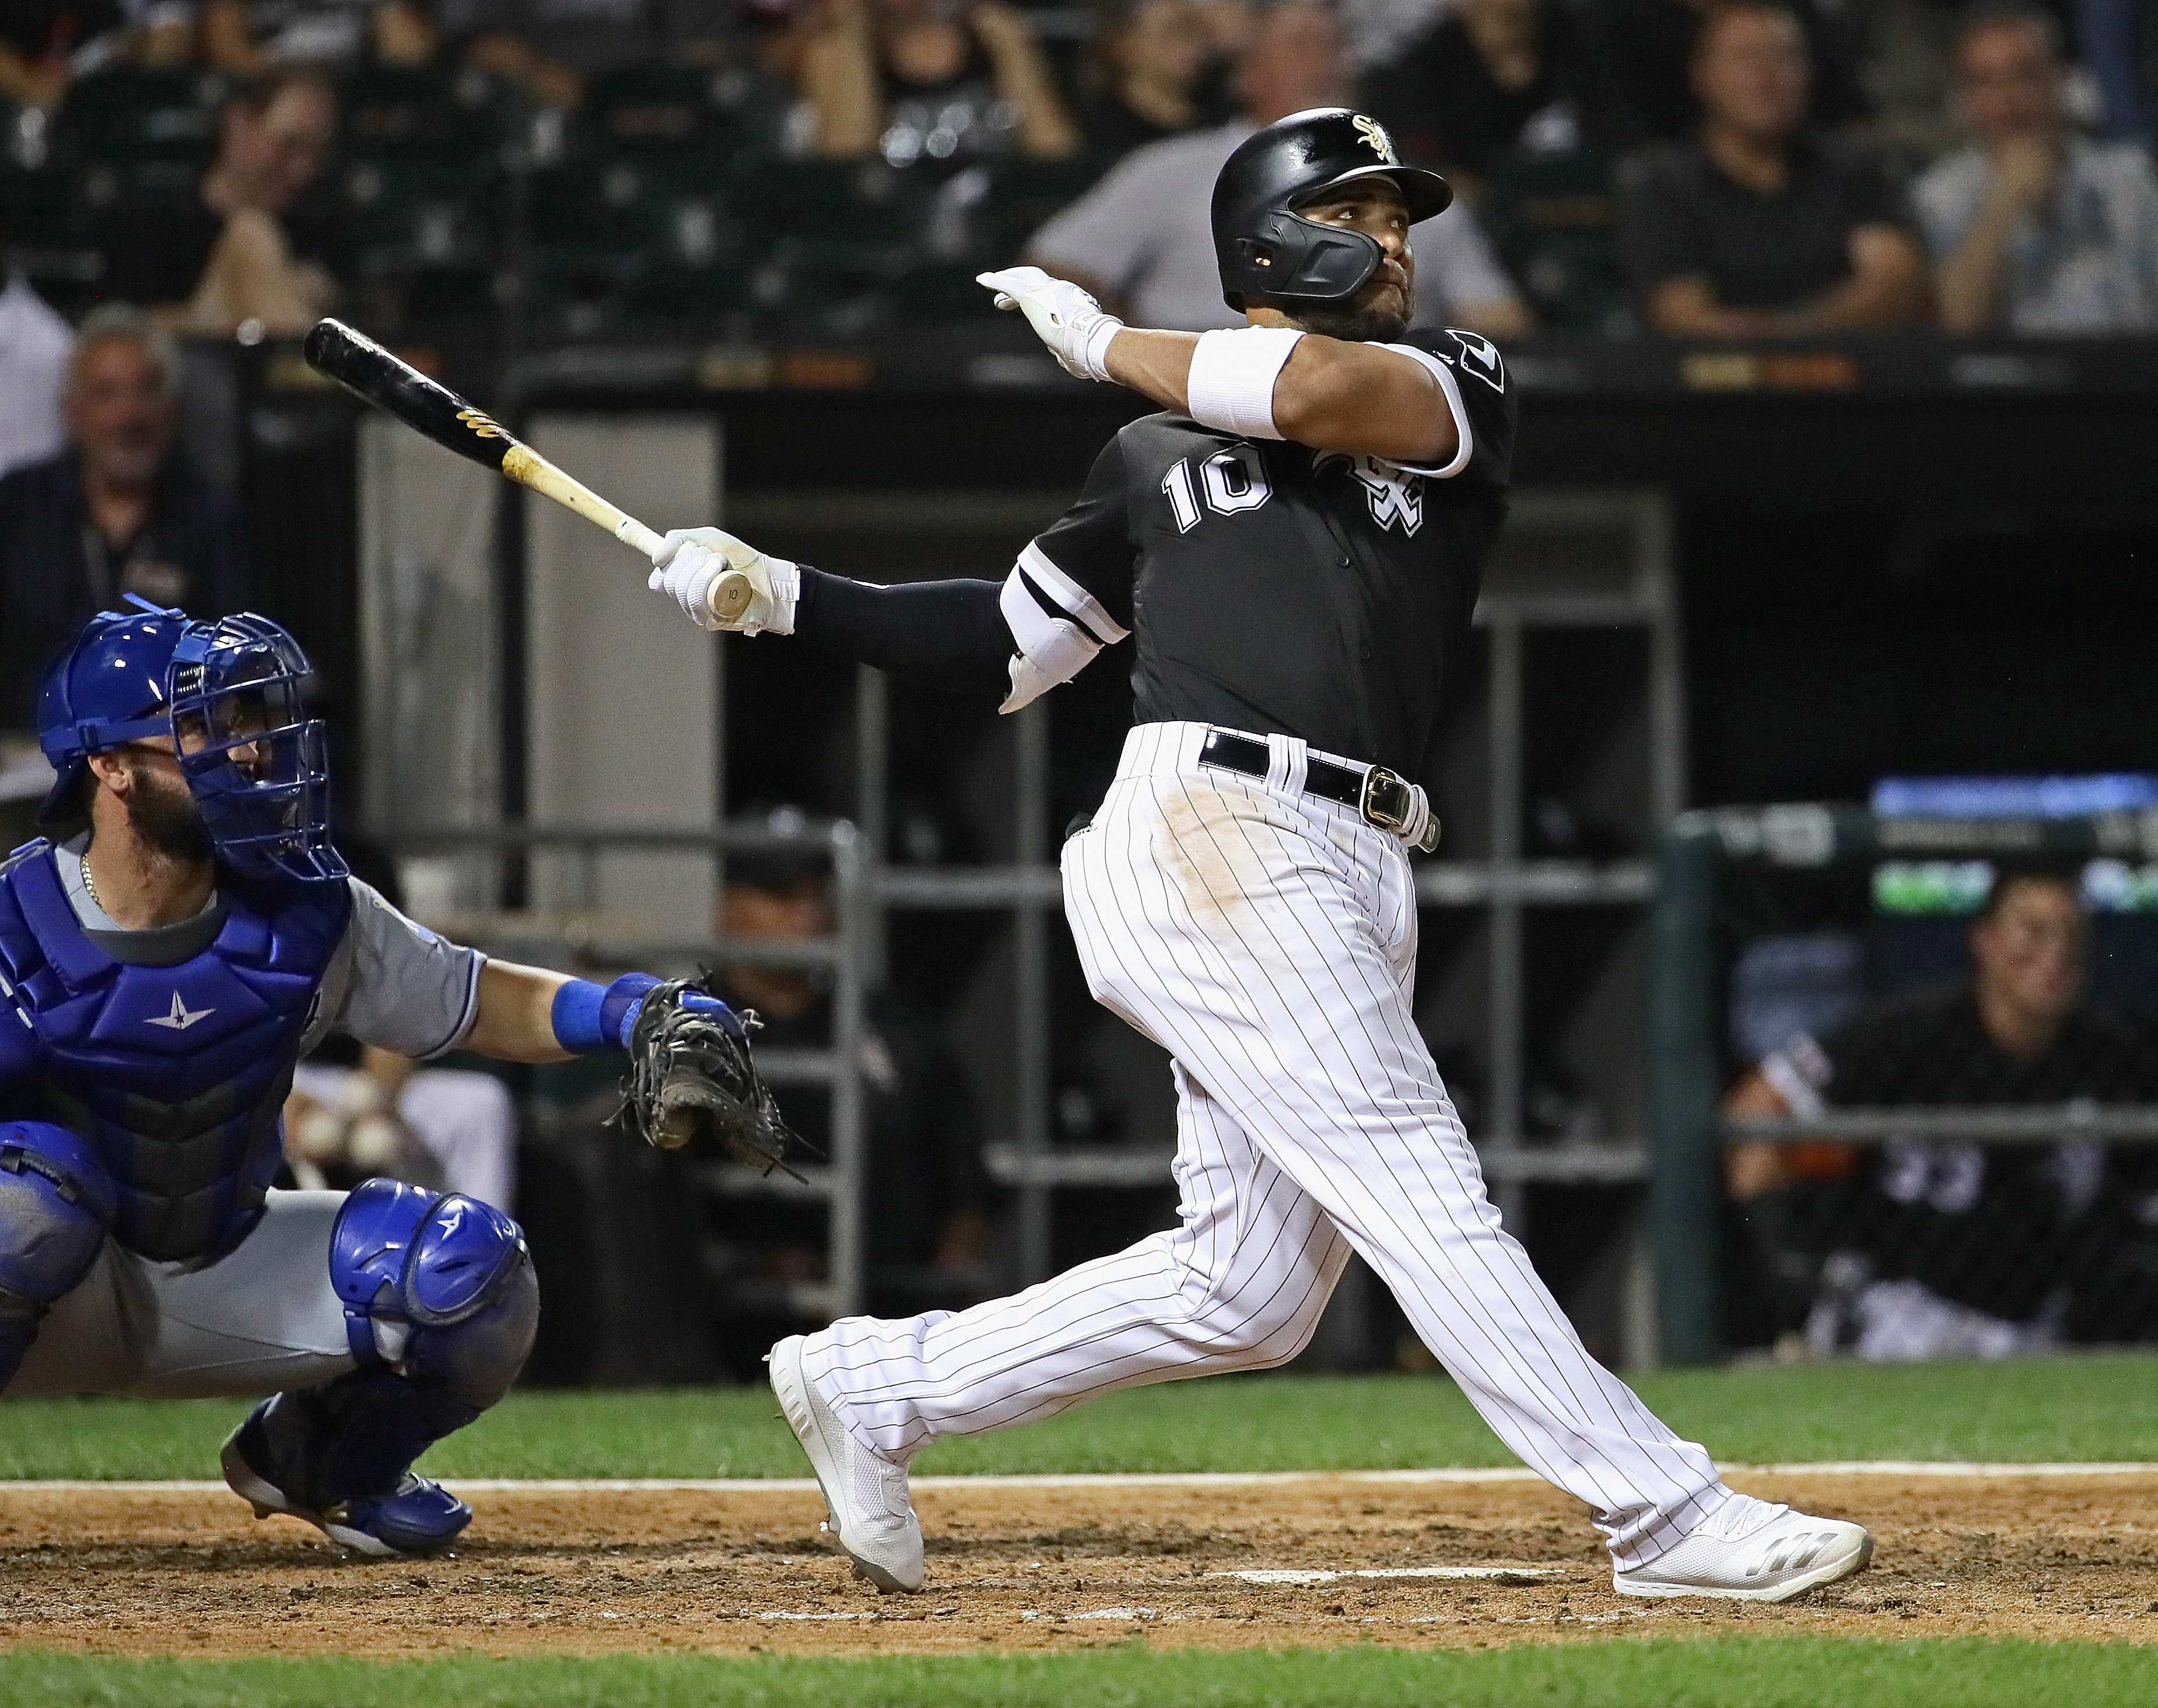 Yoan Moncada #10 of the Chicago White Sox hits a two run home run in the 7th inning against the Kansas City Royals at Guaranteed Rate Field on September 10, 2019 in Chicago, Illinois.